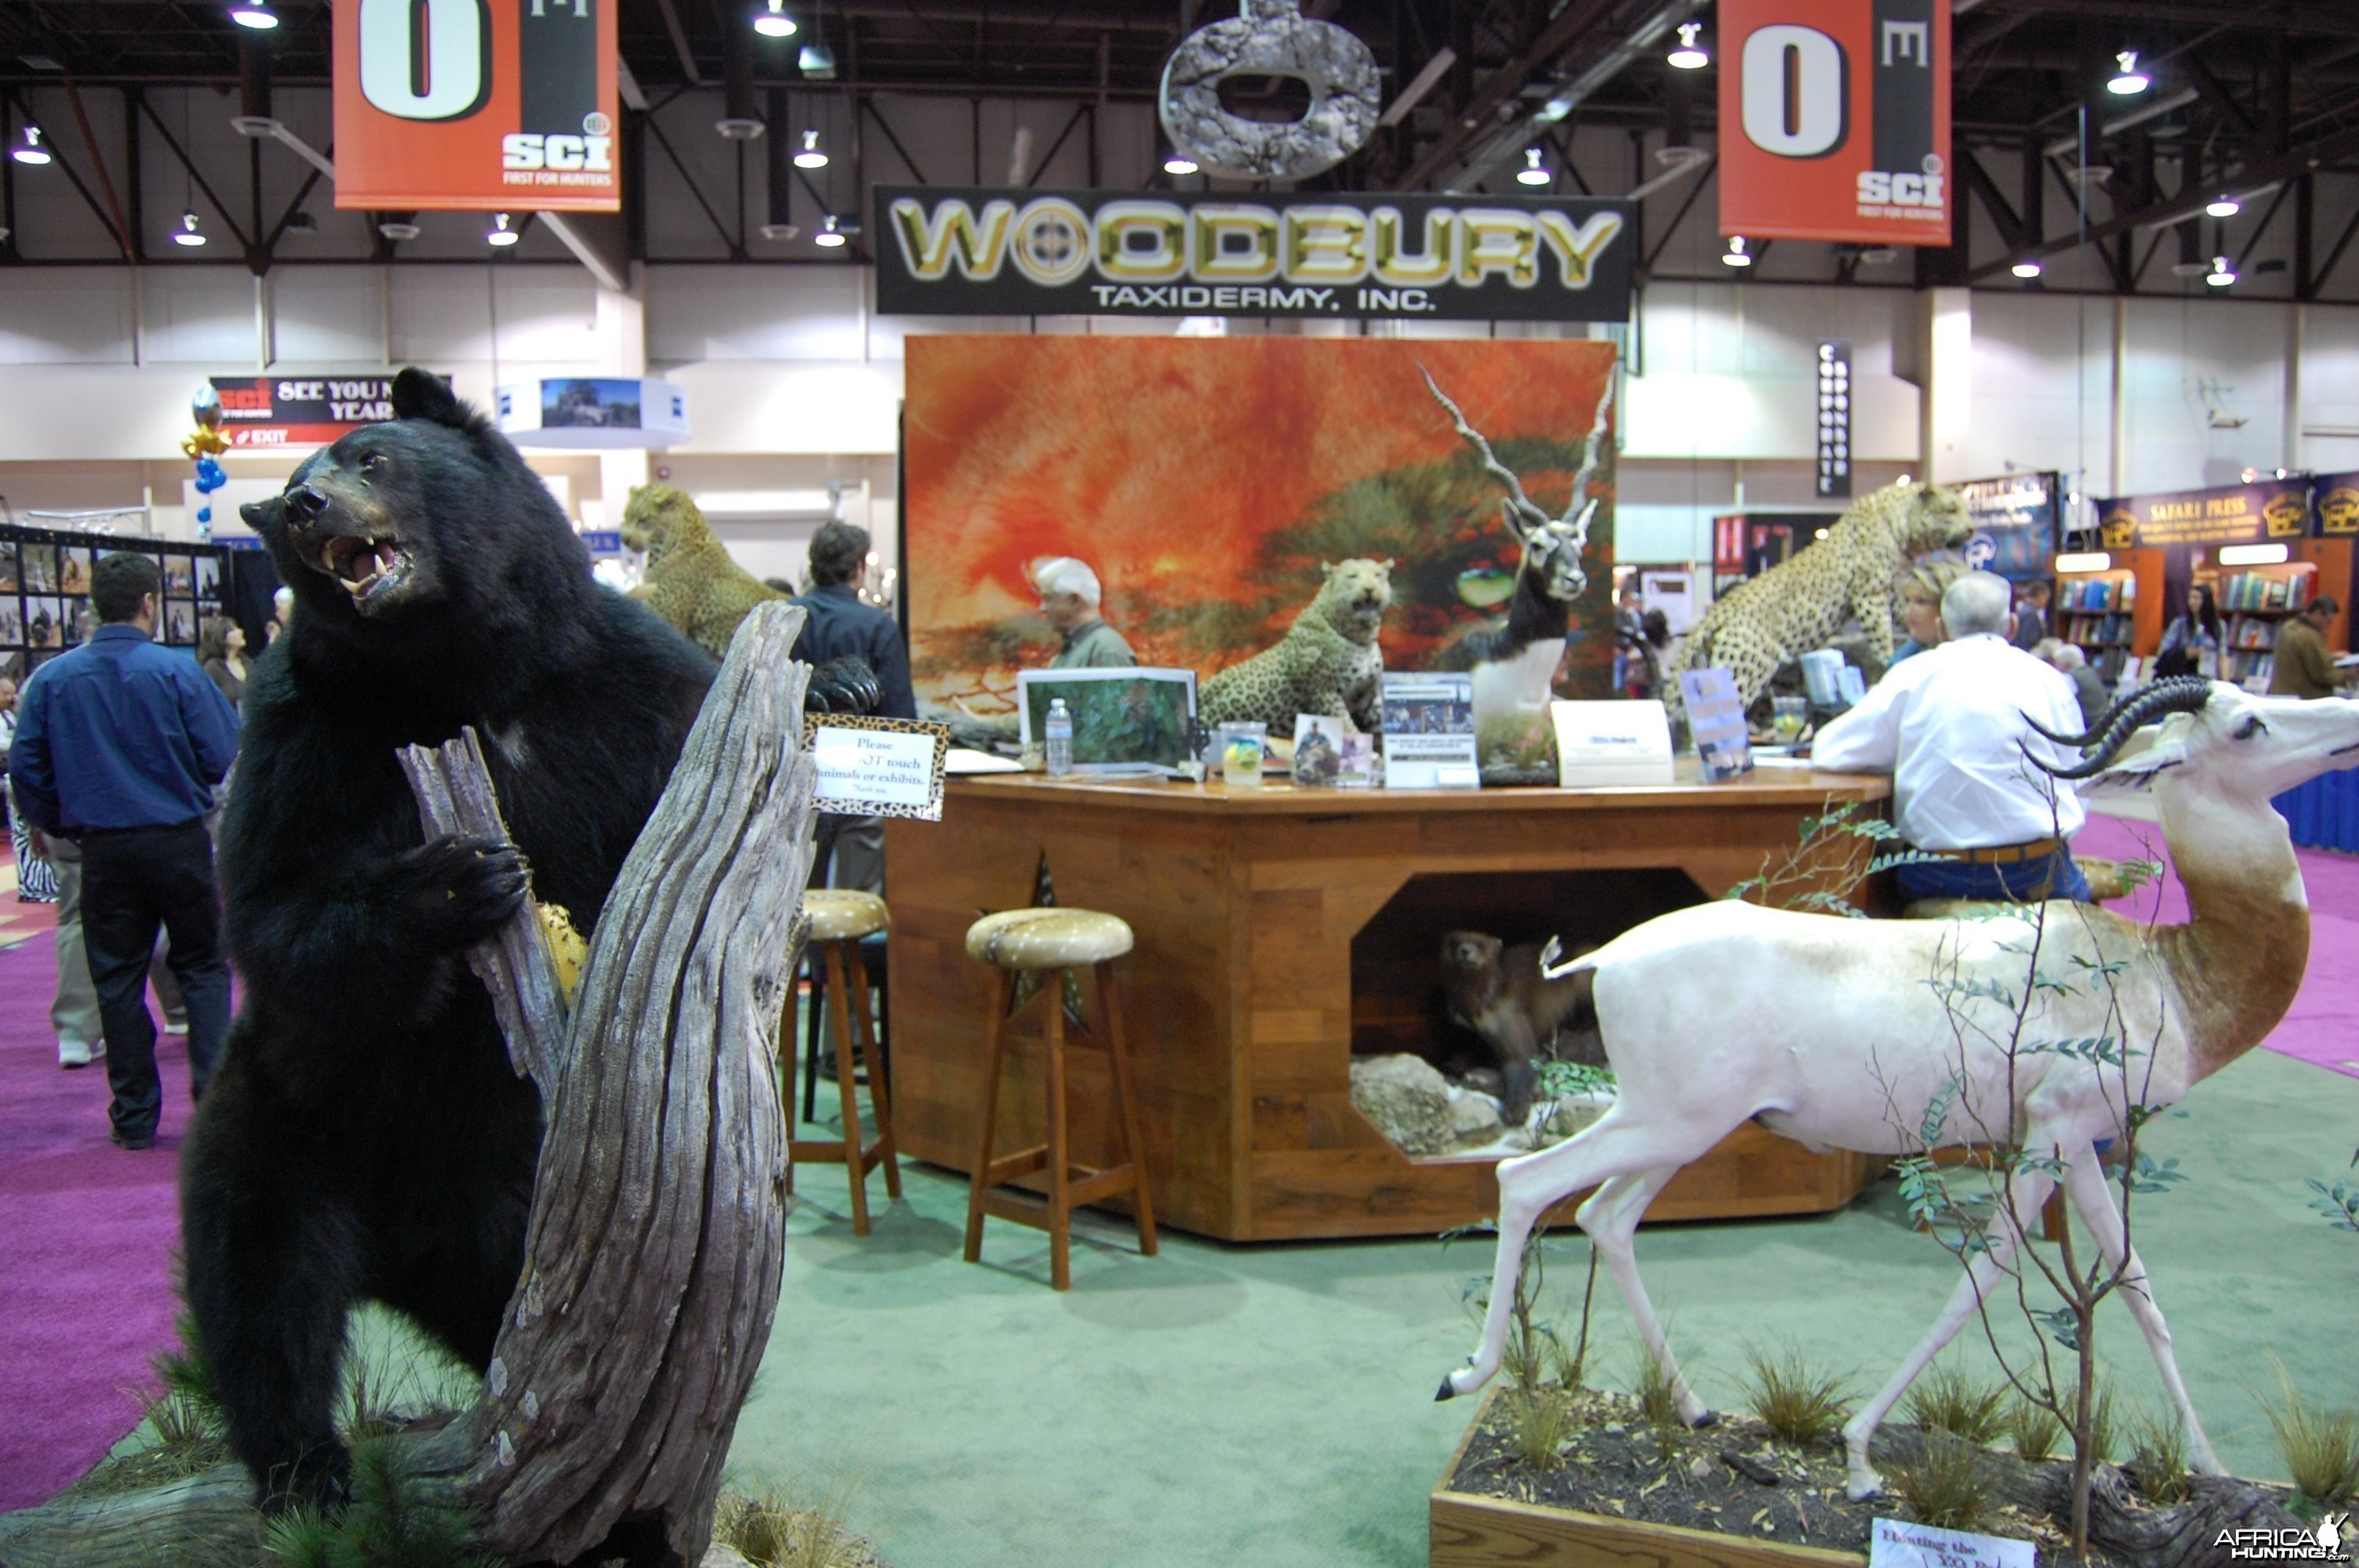 Woodbury Taxidermy